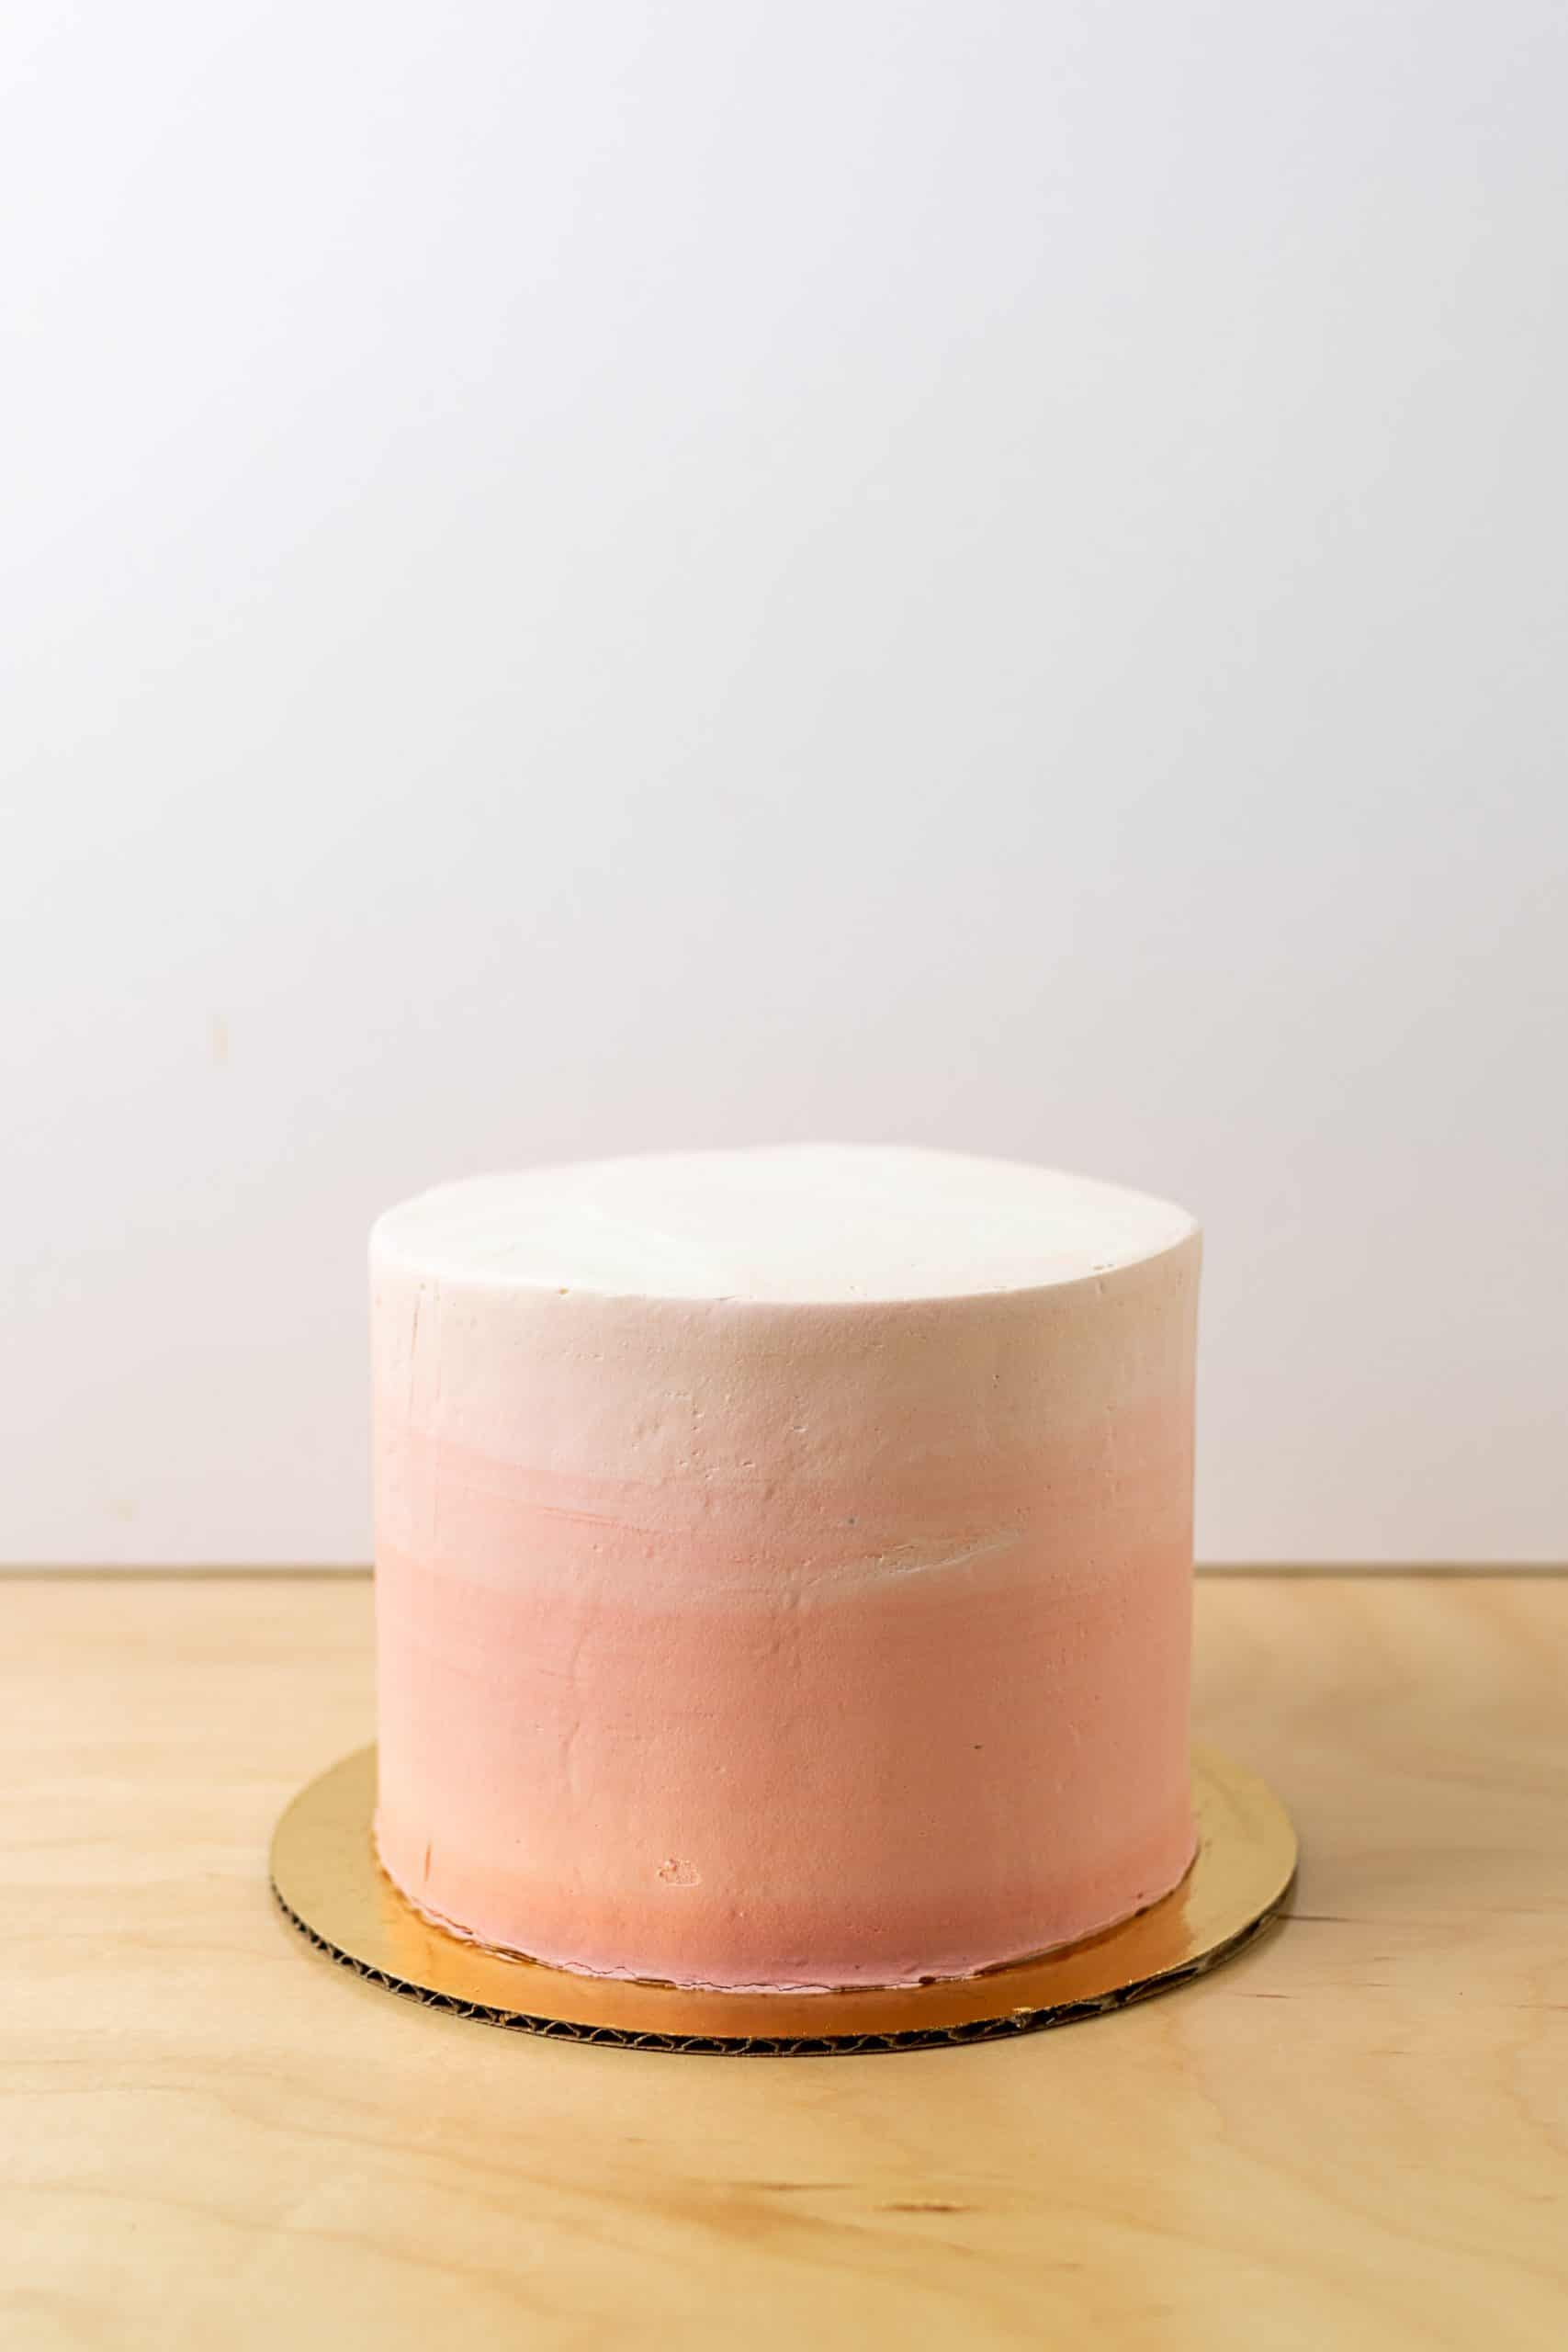 Signitaure Cake Decorated with an Ombre Side